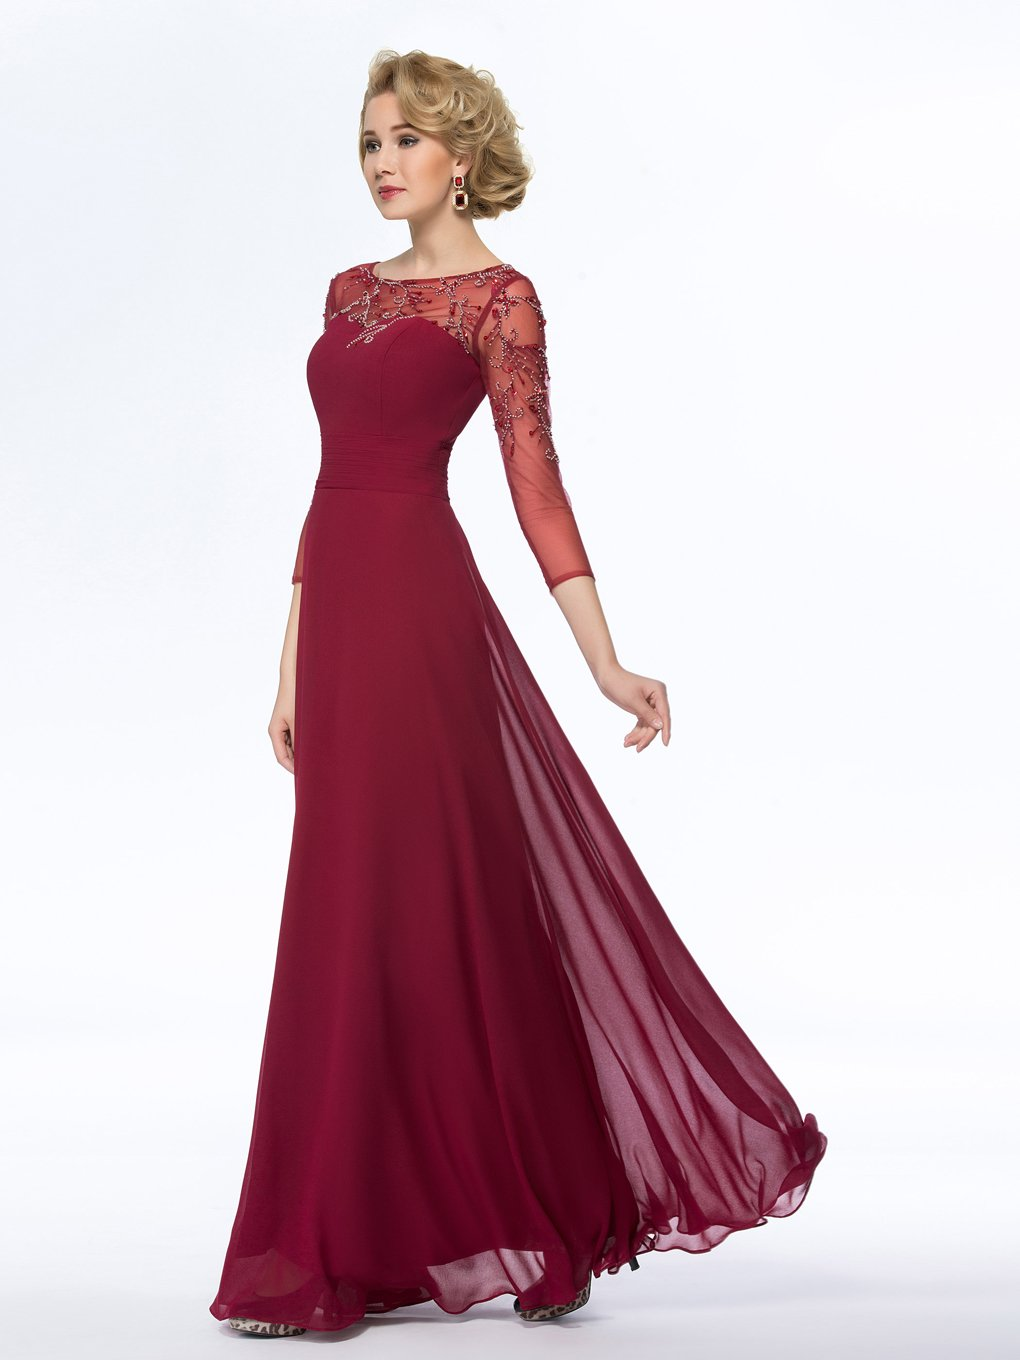 Snowskite Women's Elegant Long Sleeves Chiffon Beaded Mother of the Bride Dress Burgundy 8 by Snowskite (Image #3)